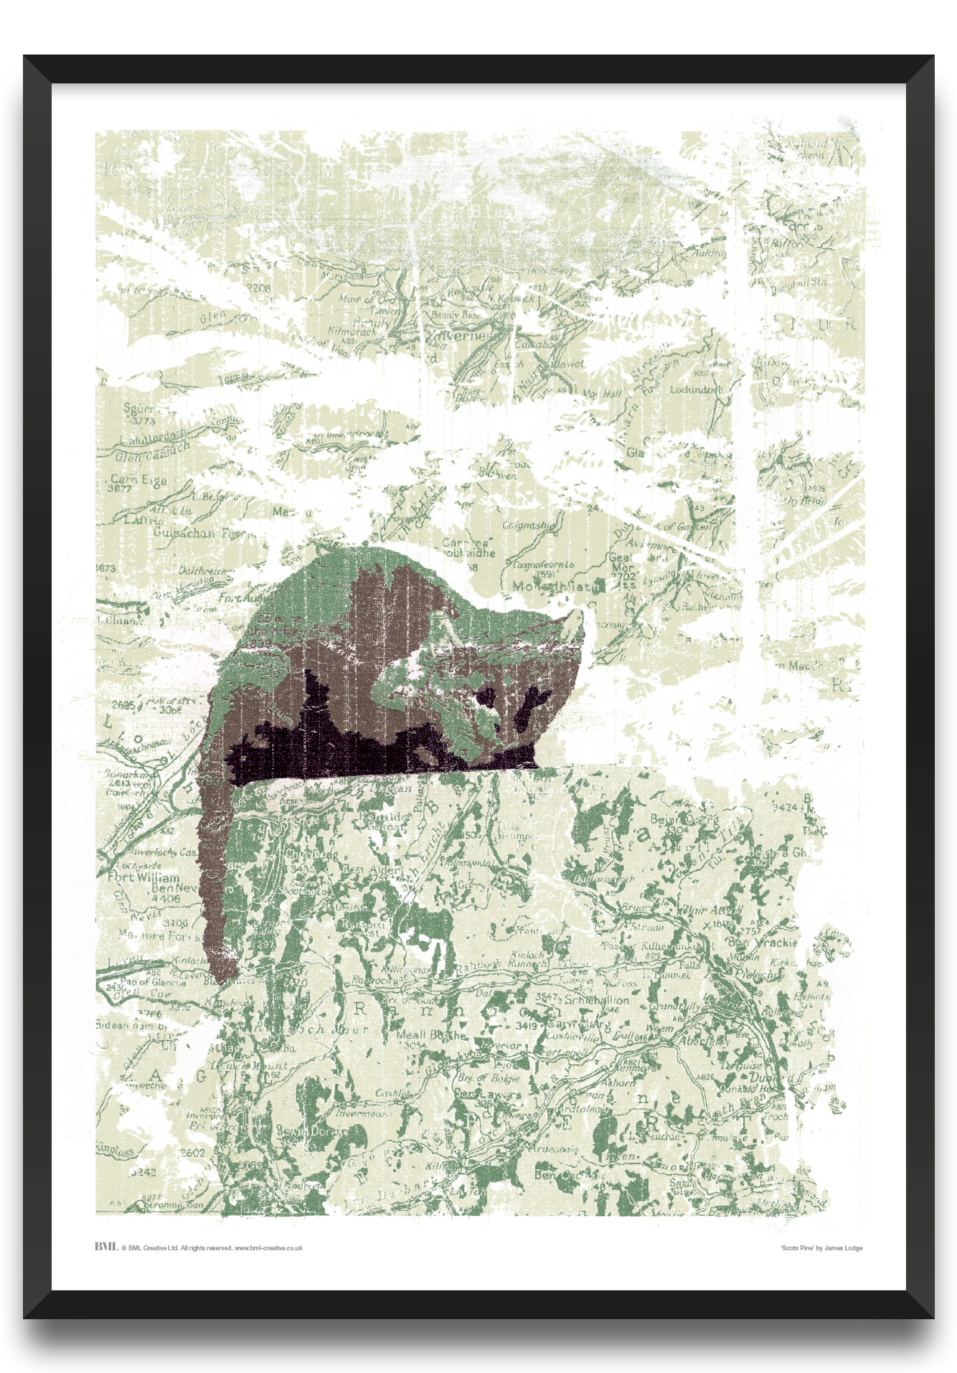 Scots Pine, animals art print by James Lodge, Prints for Charity